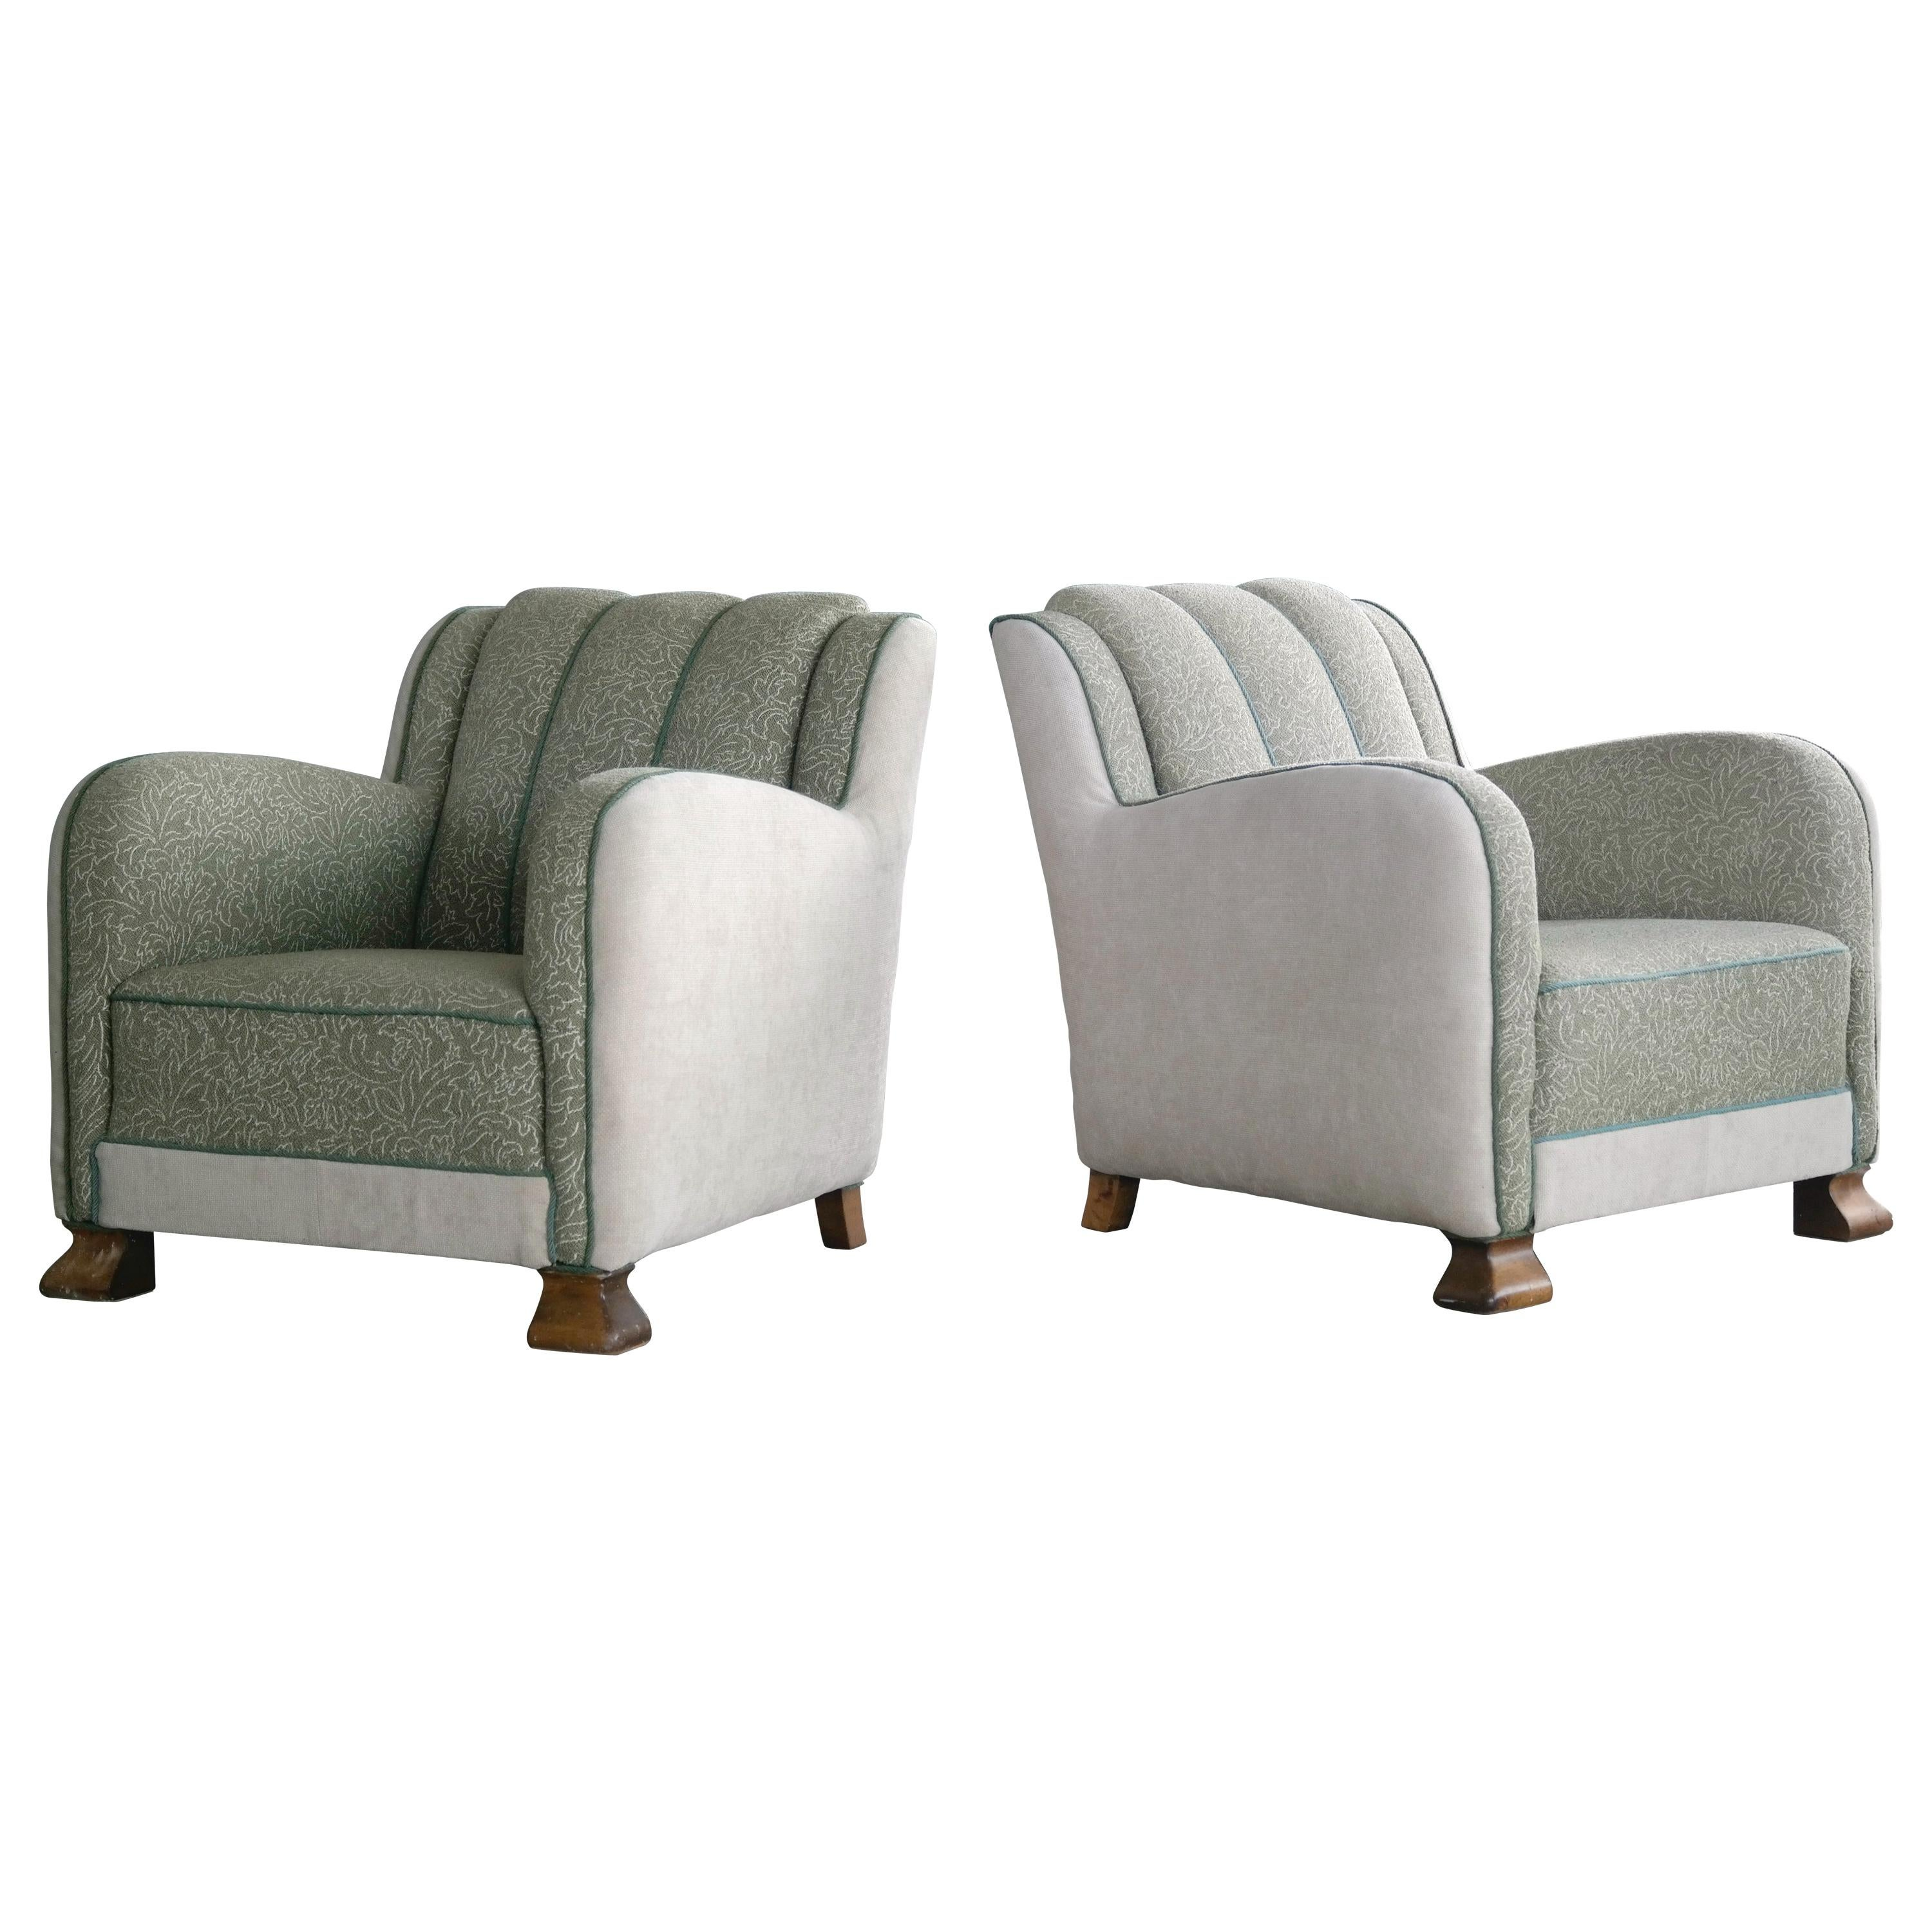 1940s Pair of Art Deco Large-Sized Danish Club Chairs in Style of Fritz Hansen